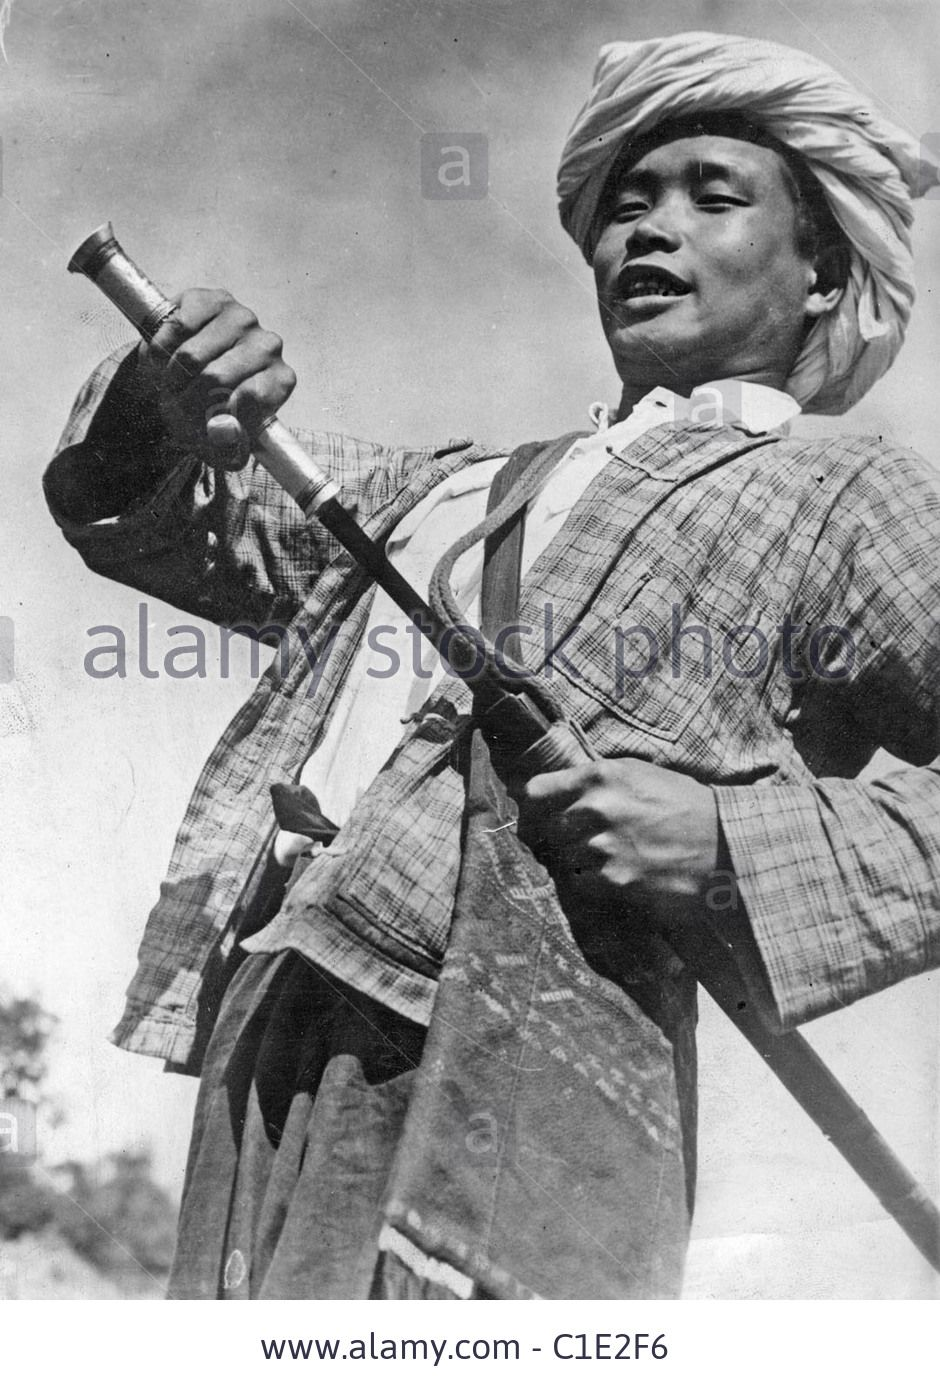 BURMA 1940 Member of the Kachin tribe fighting the Japanese invasion. His  sword is called a Dah. Stock Photo